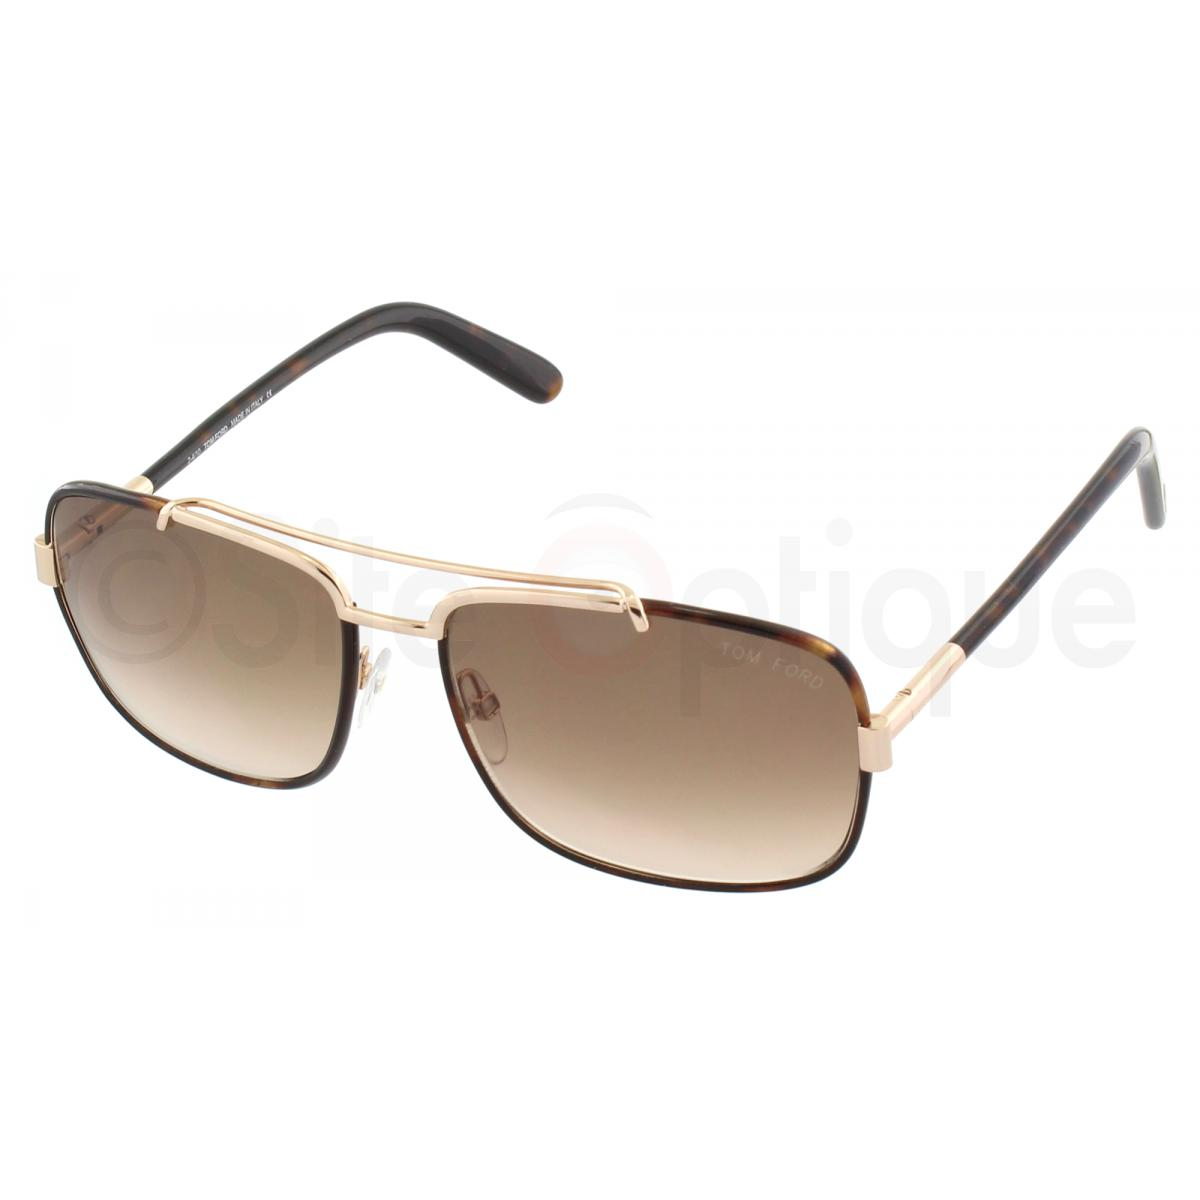 tom ford lunettes soleil homme